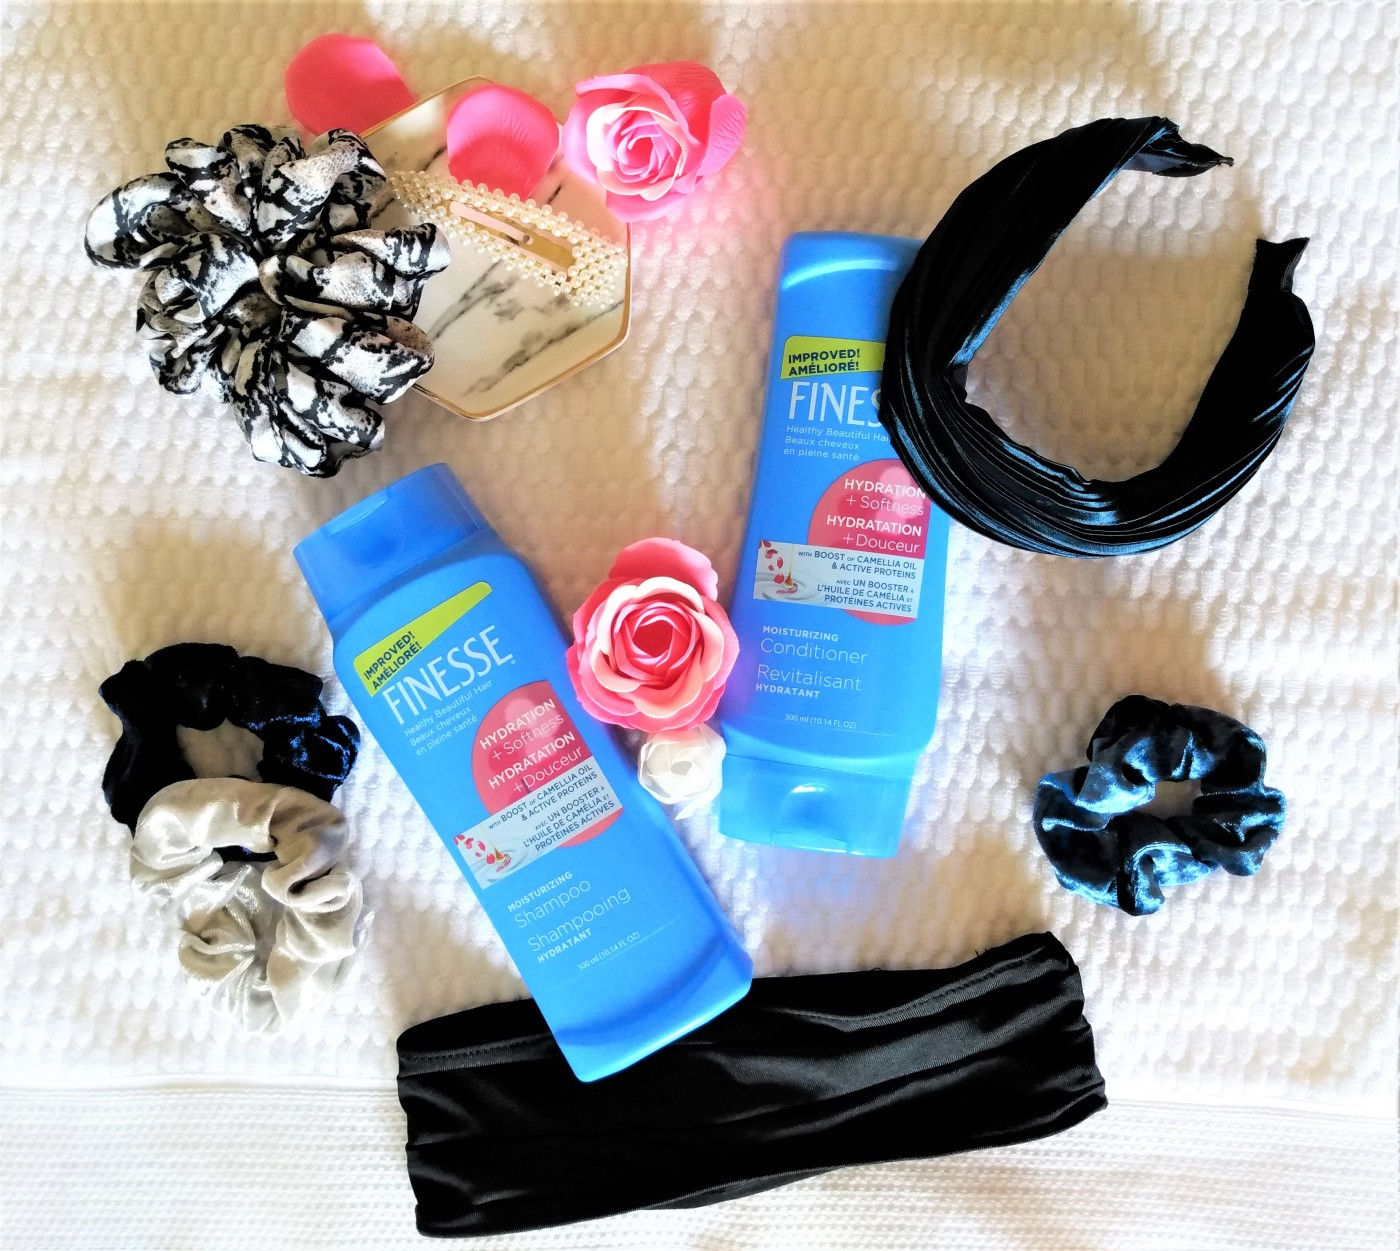 finesse moisturizing shampoo and conditioner and scunci hair accessories